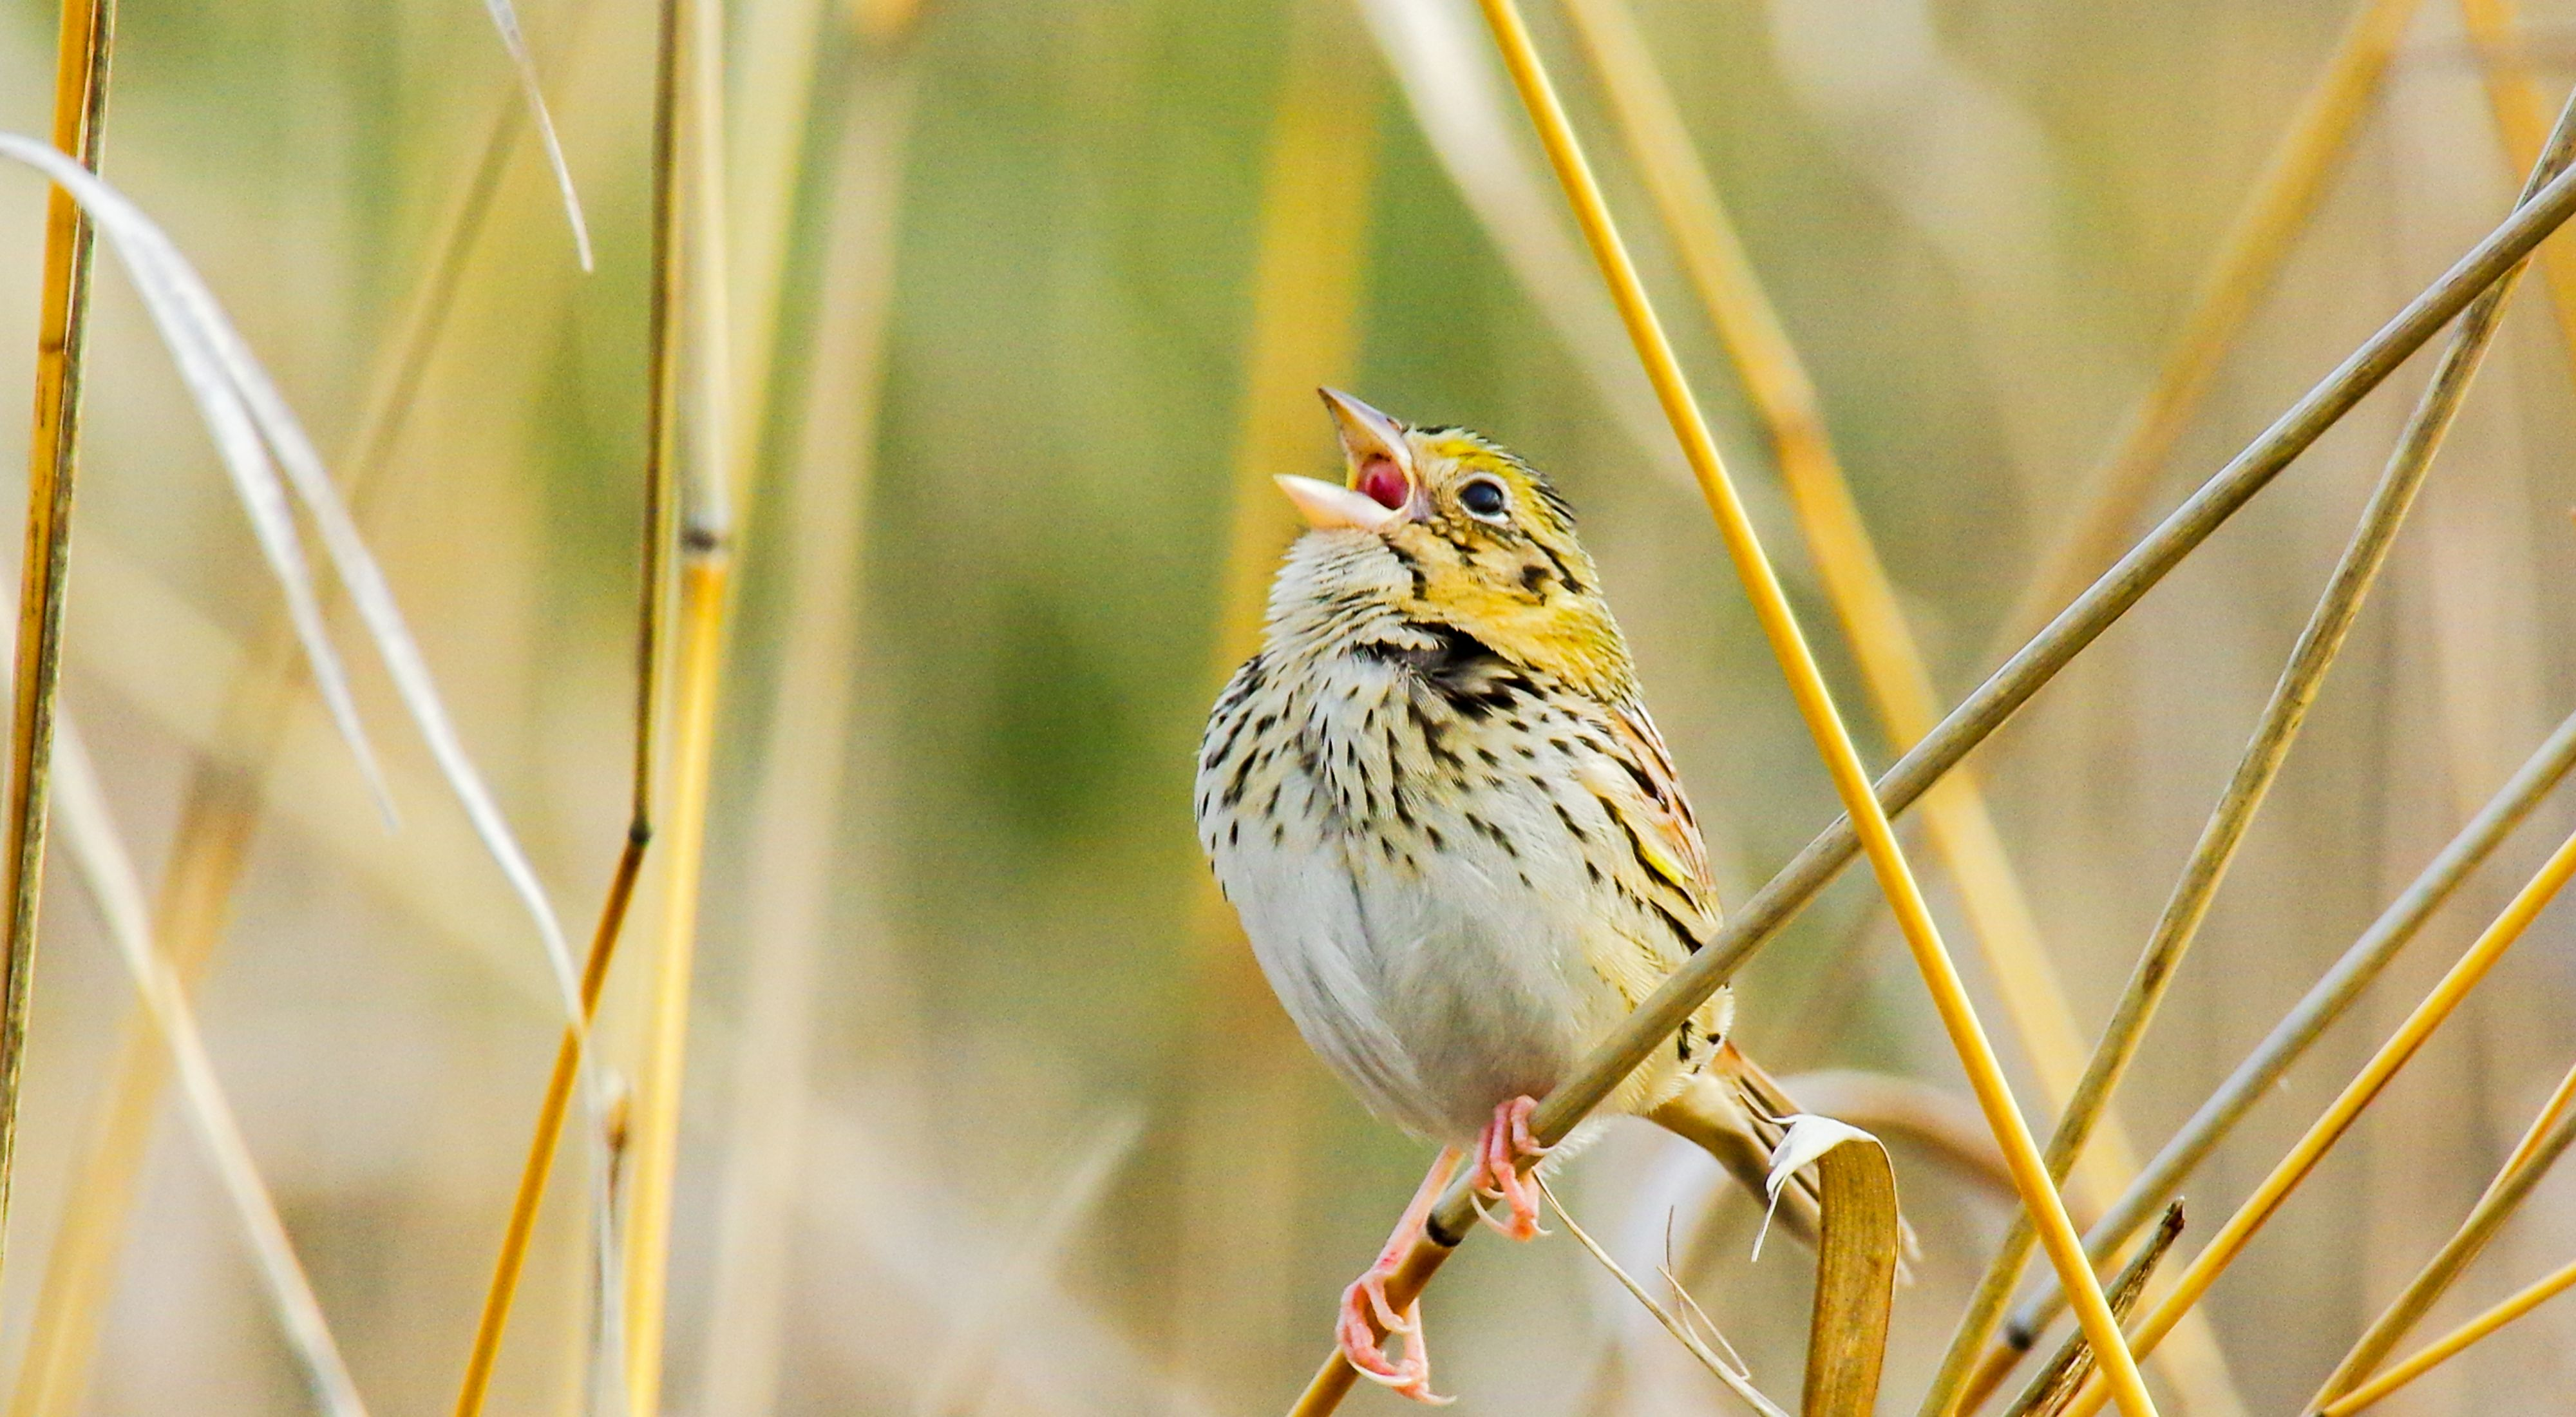 The Henslow's sparrow is one of the rare grassland species found at the Persimmon Gully Preserve.